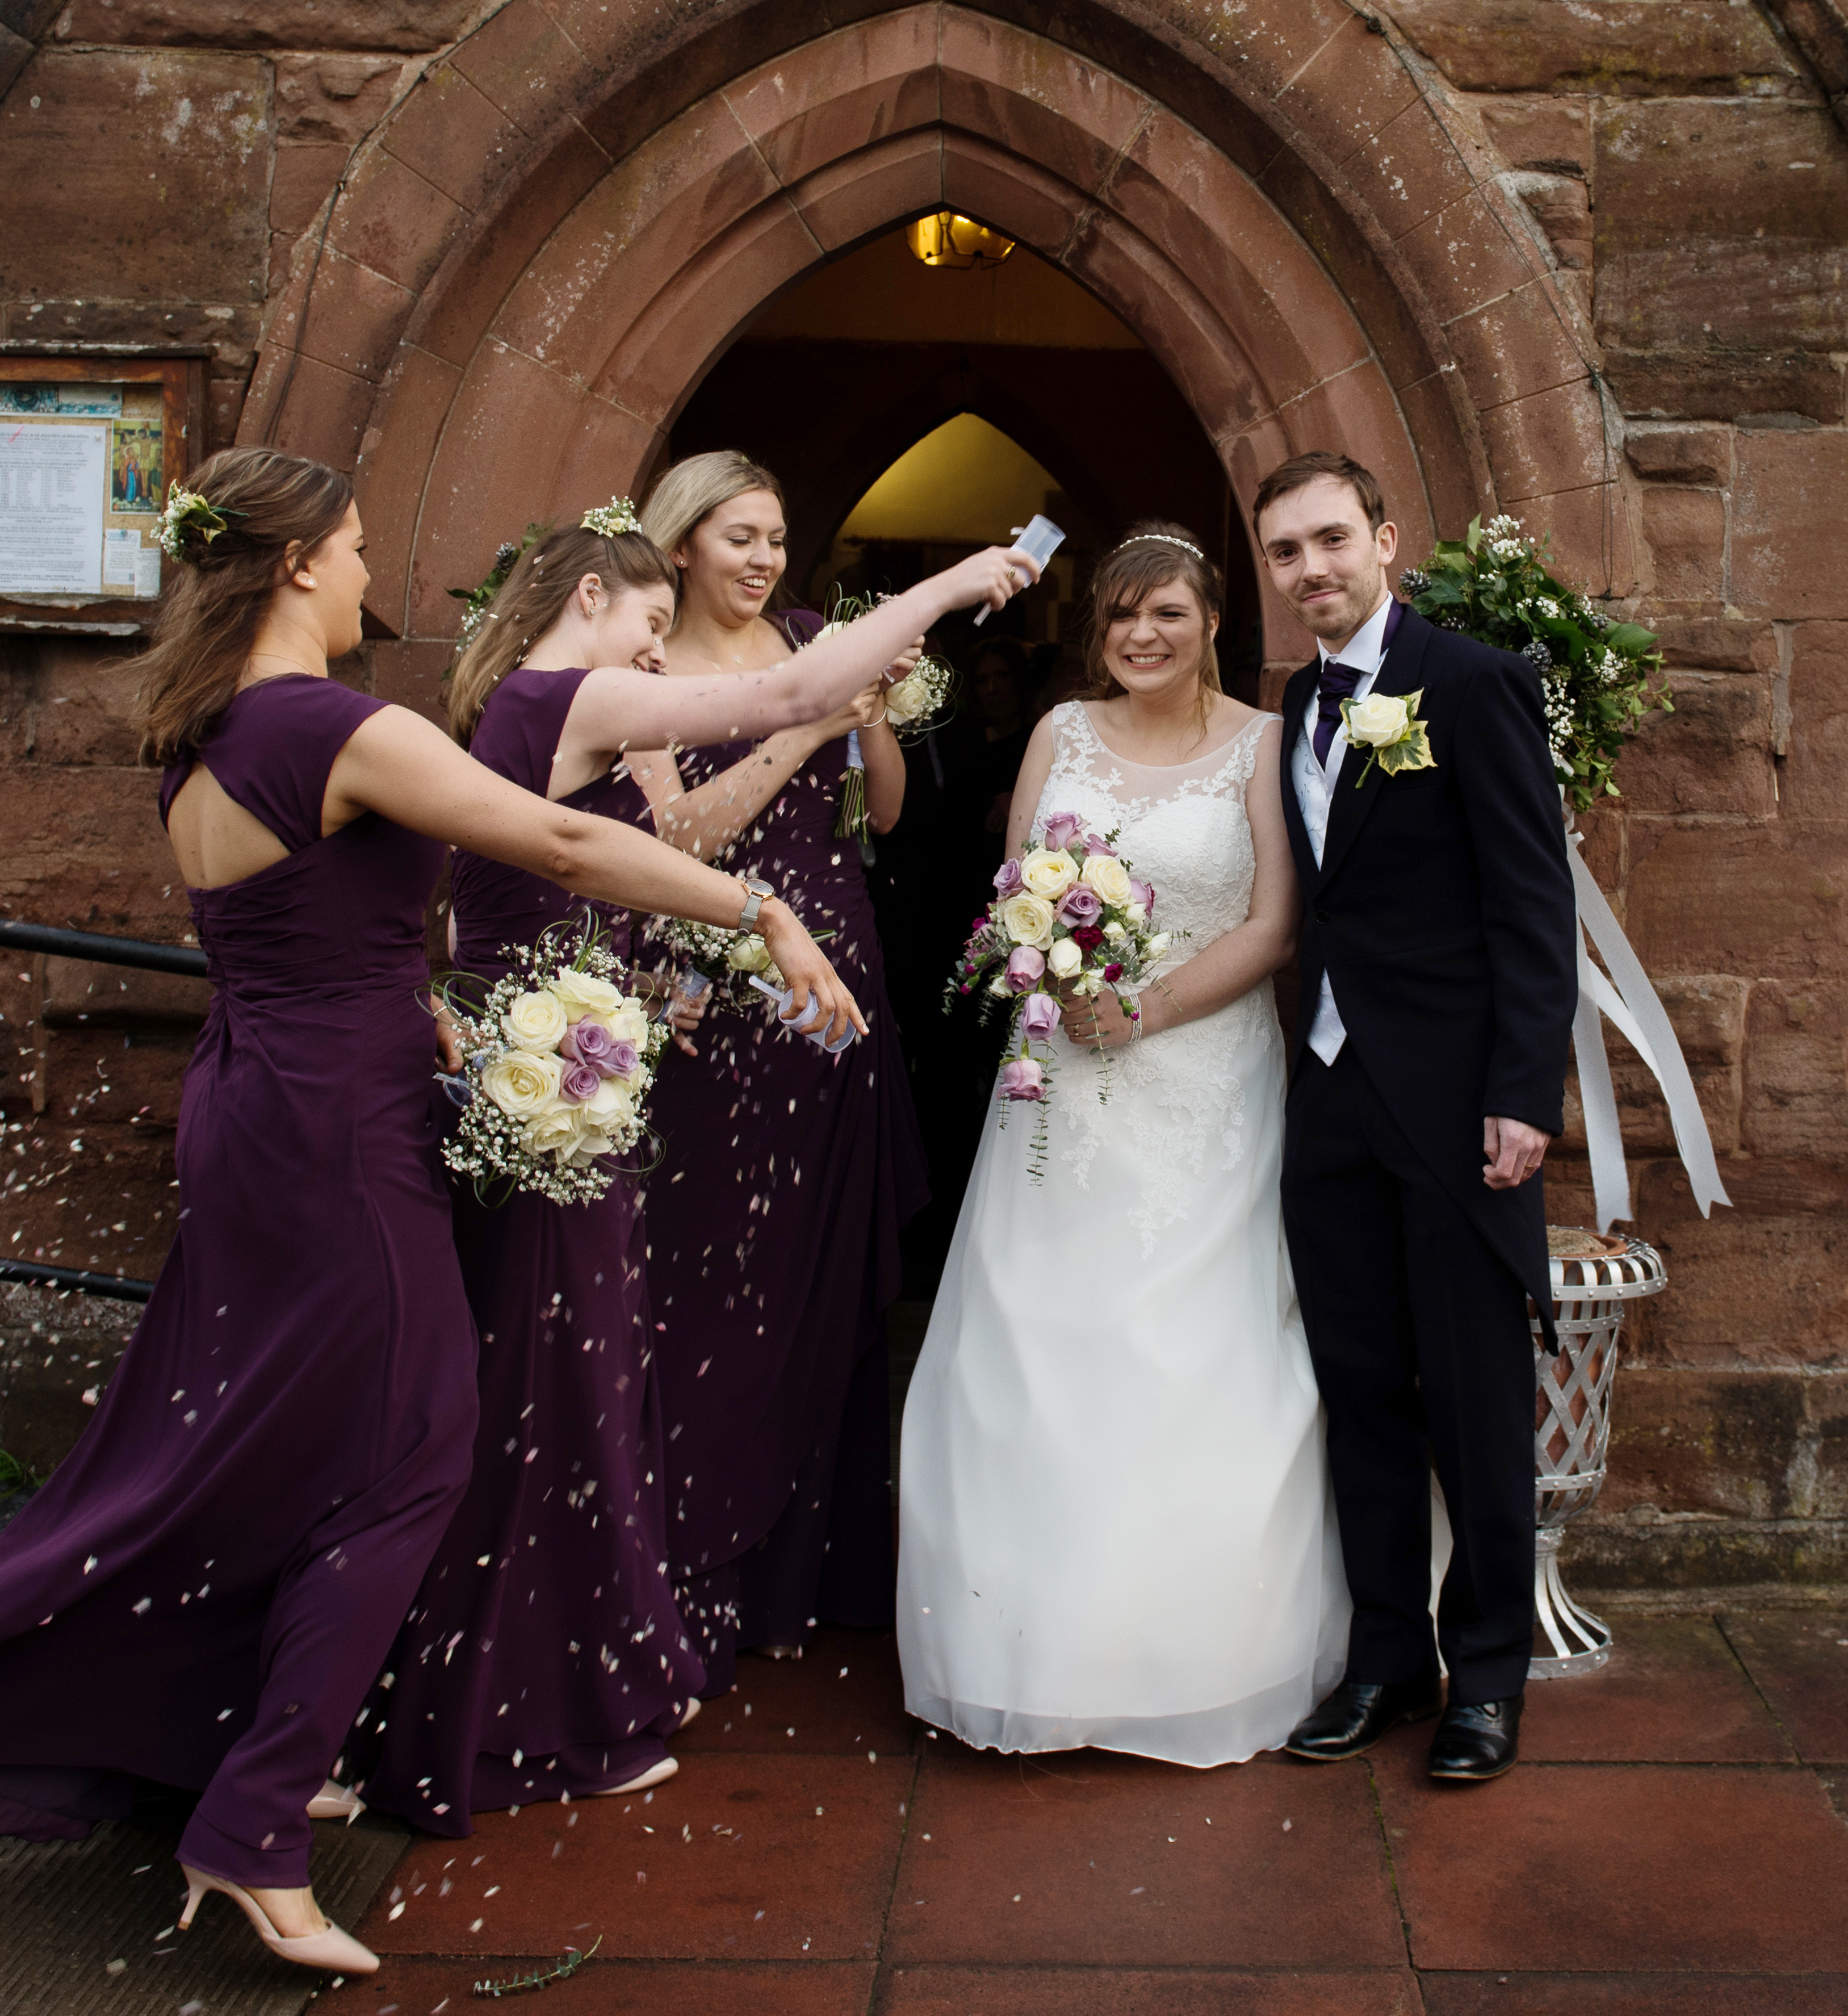 Jess, Tom and the bridesmaids